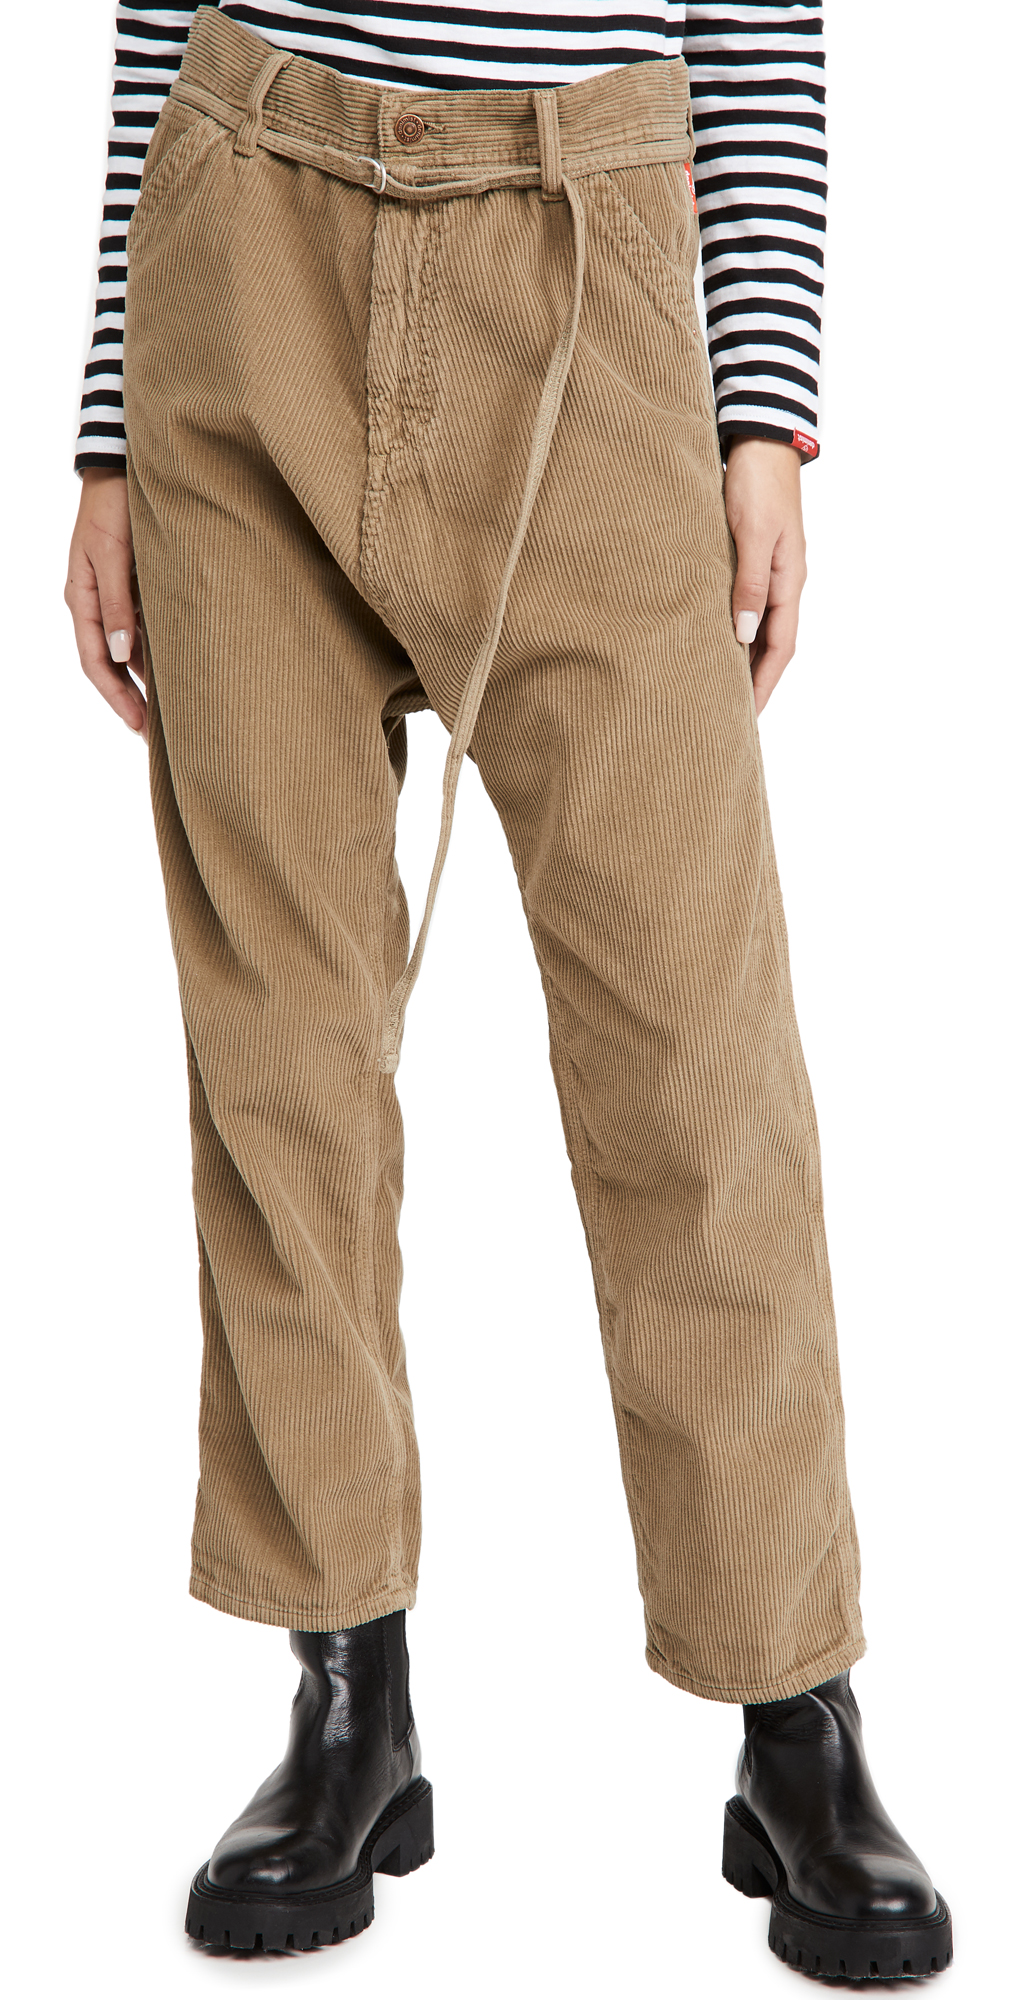 Denimist Carpenter Drop Pants